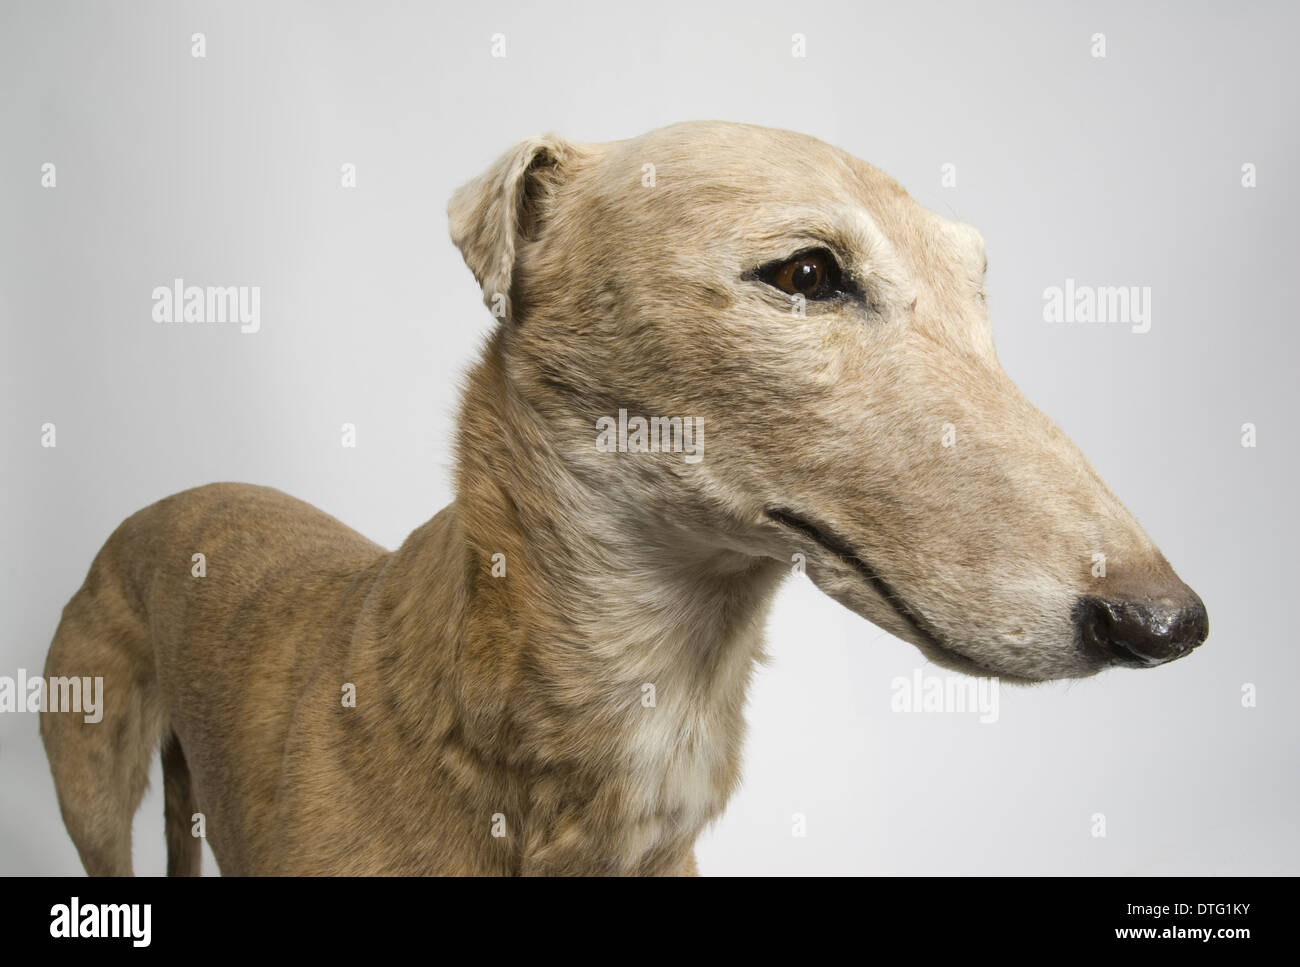 Mick the Miller, greyhound - Stock Image